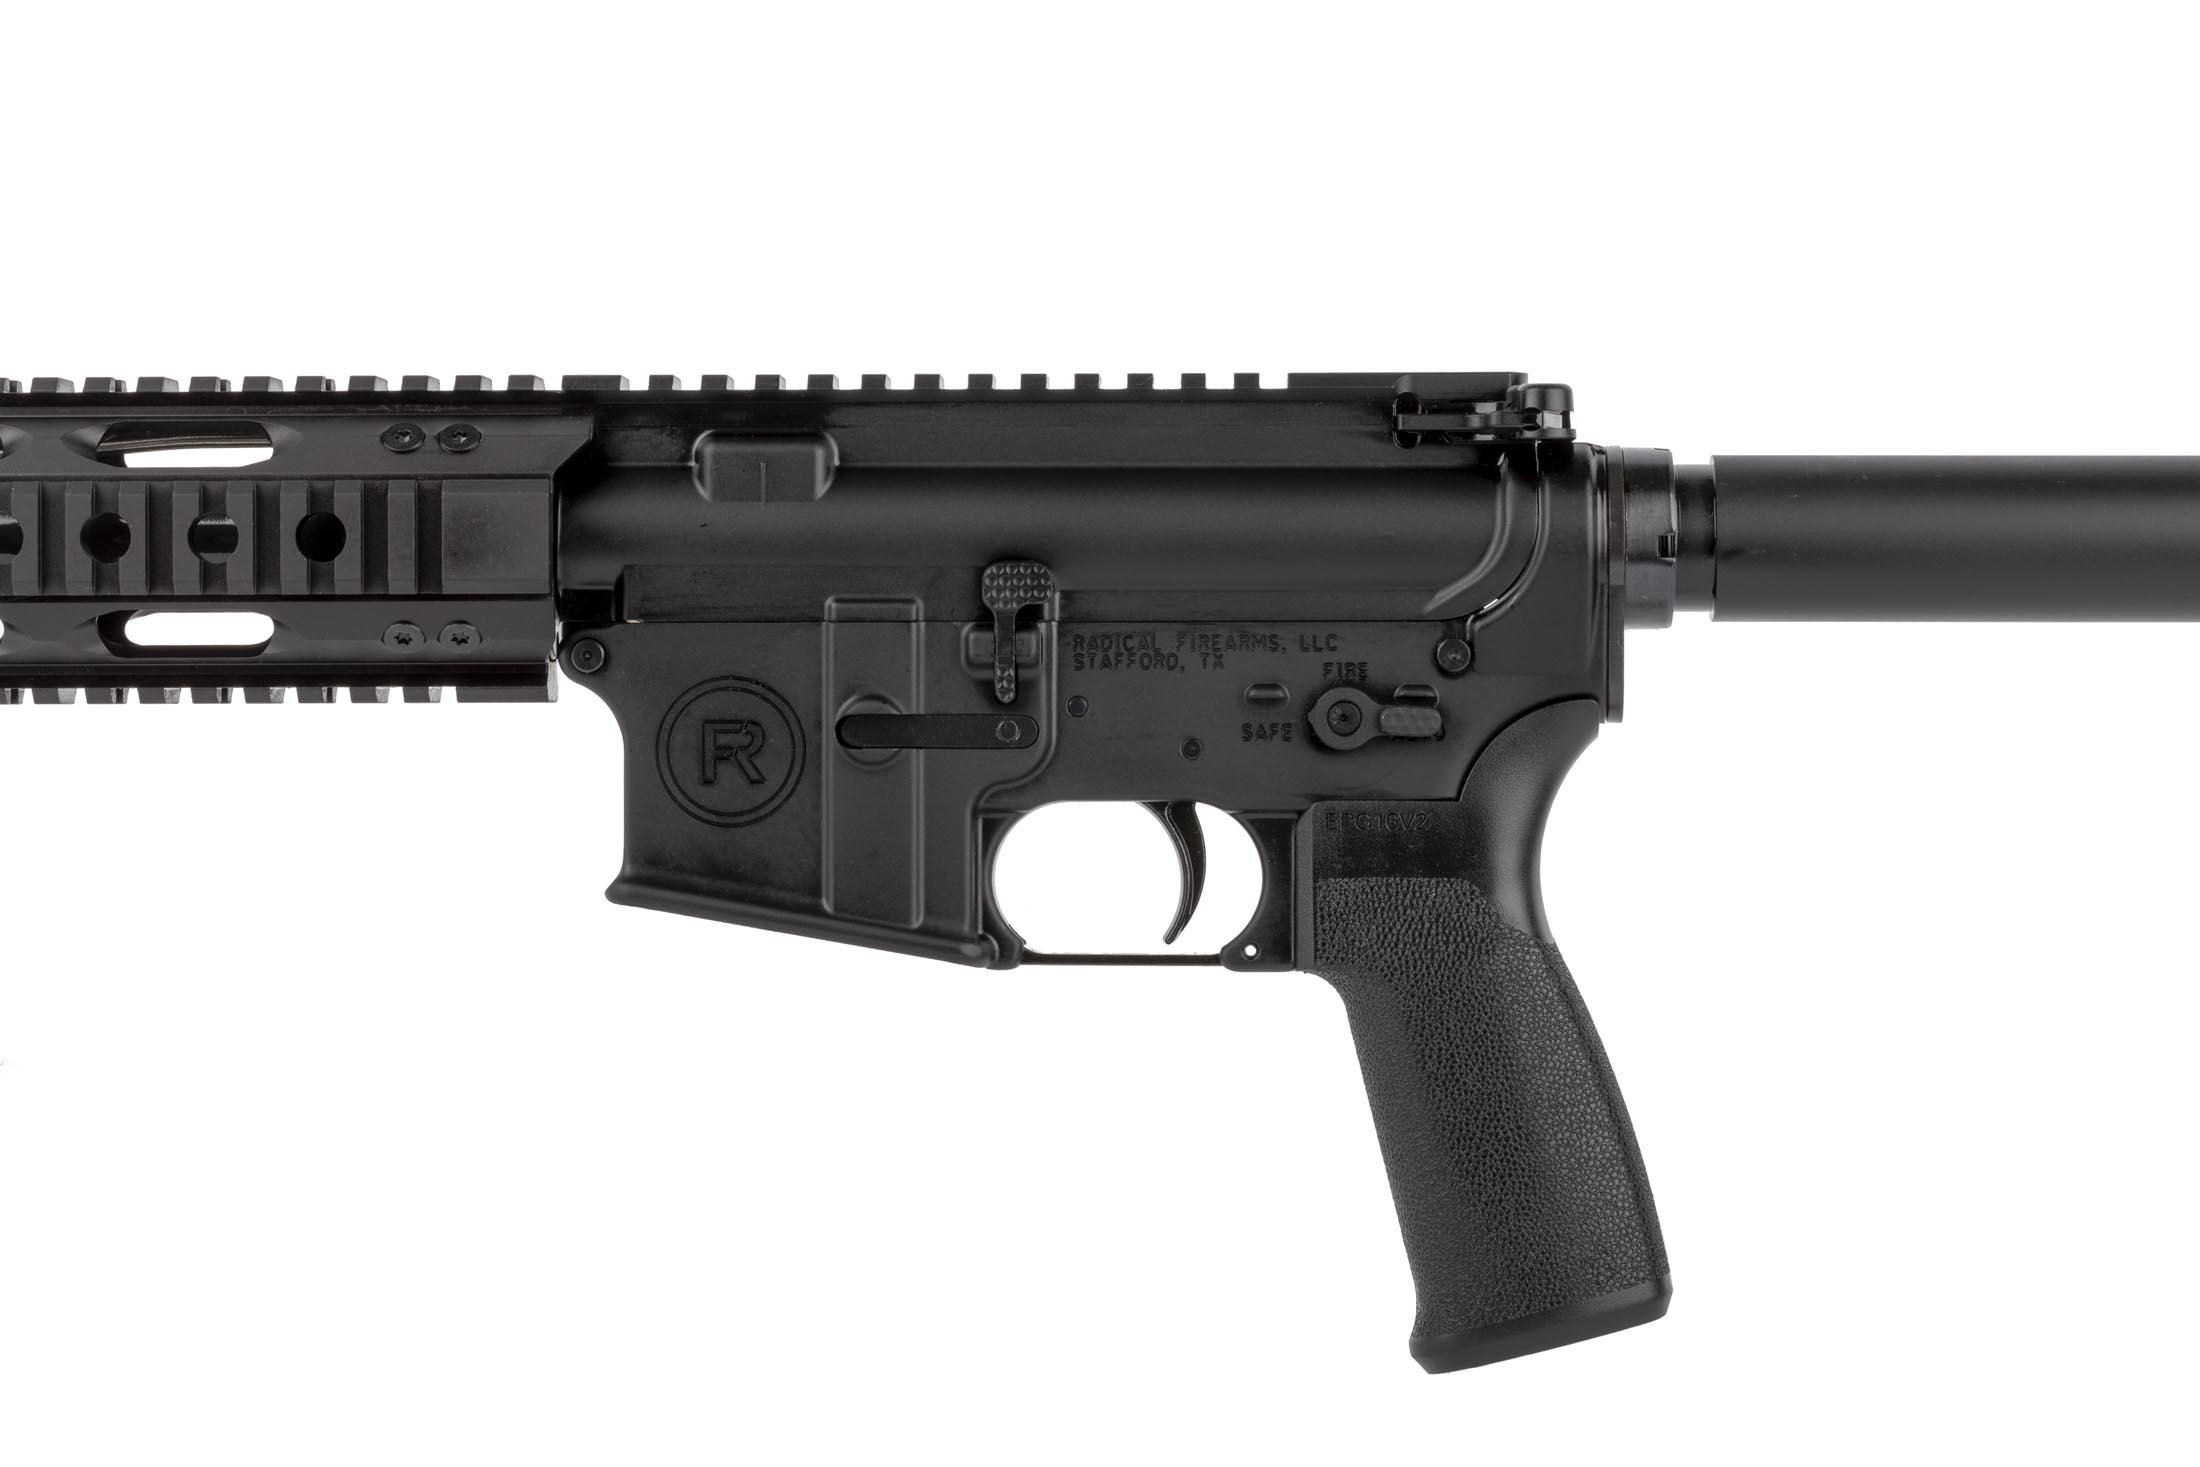 Radical Firearms 10.5in 5.56 NATO AR-15 pistol features an ambidextrous safety seletor and enhanced bolt catch